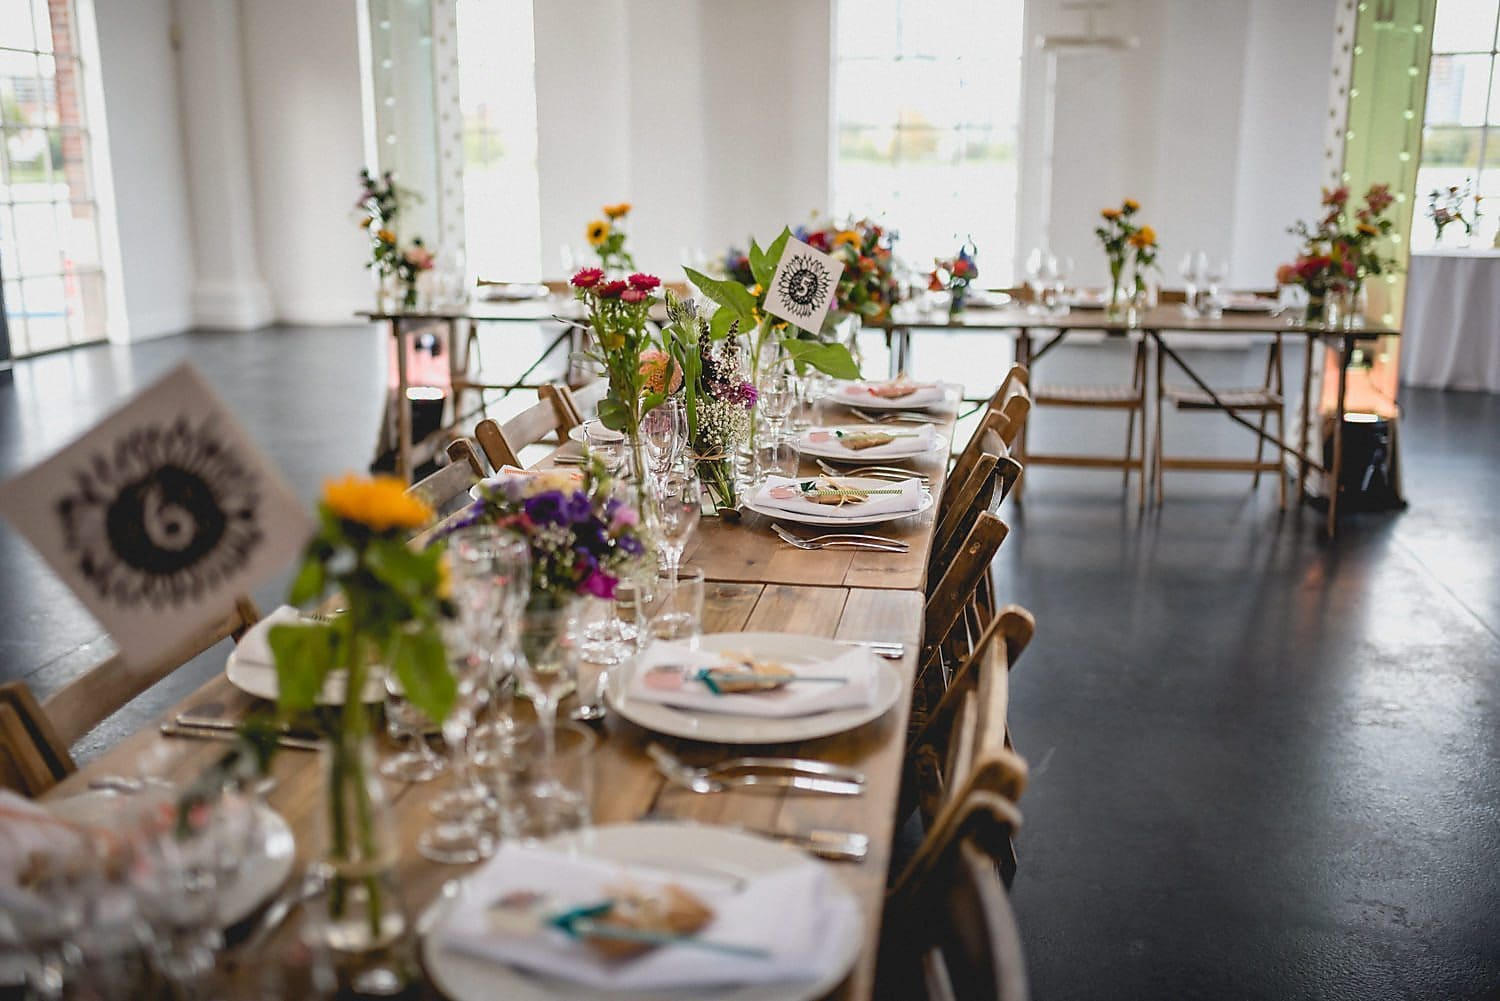 Close up of tablescape with bright flowers in bud vases